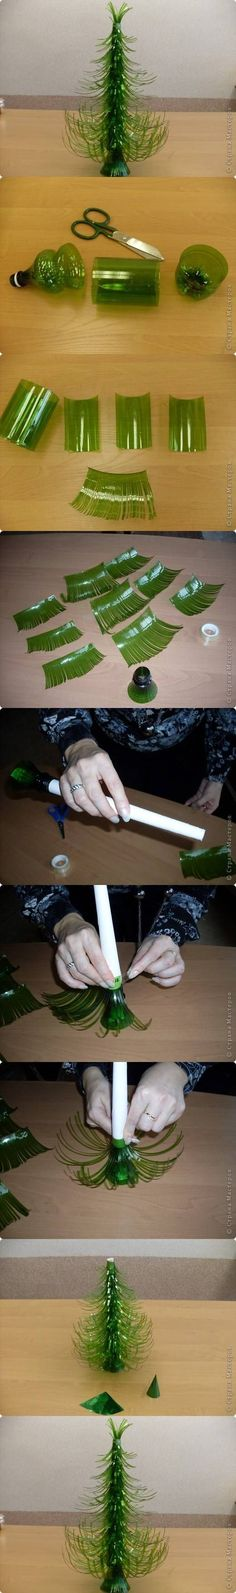 DIY Plastic Bottle Christmas Trees http://www.usefuldiy.com/diy-plastic-bottle-christmas-trees/